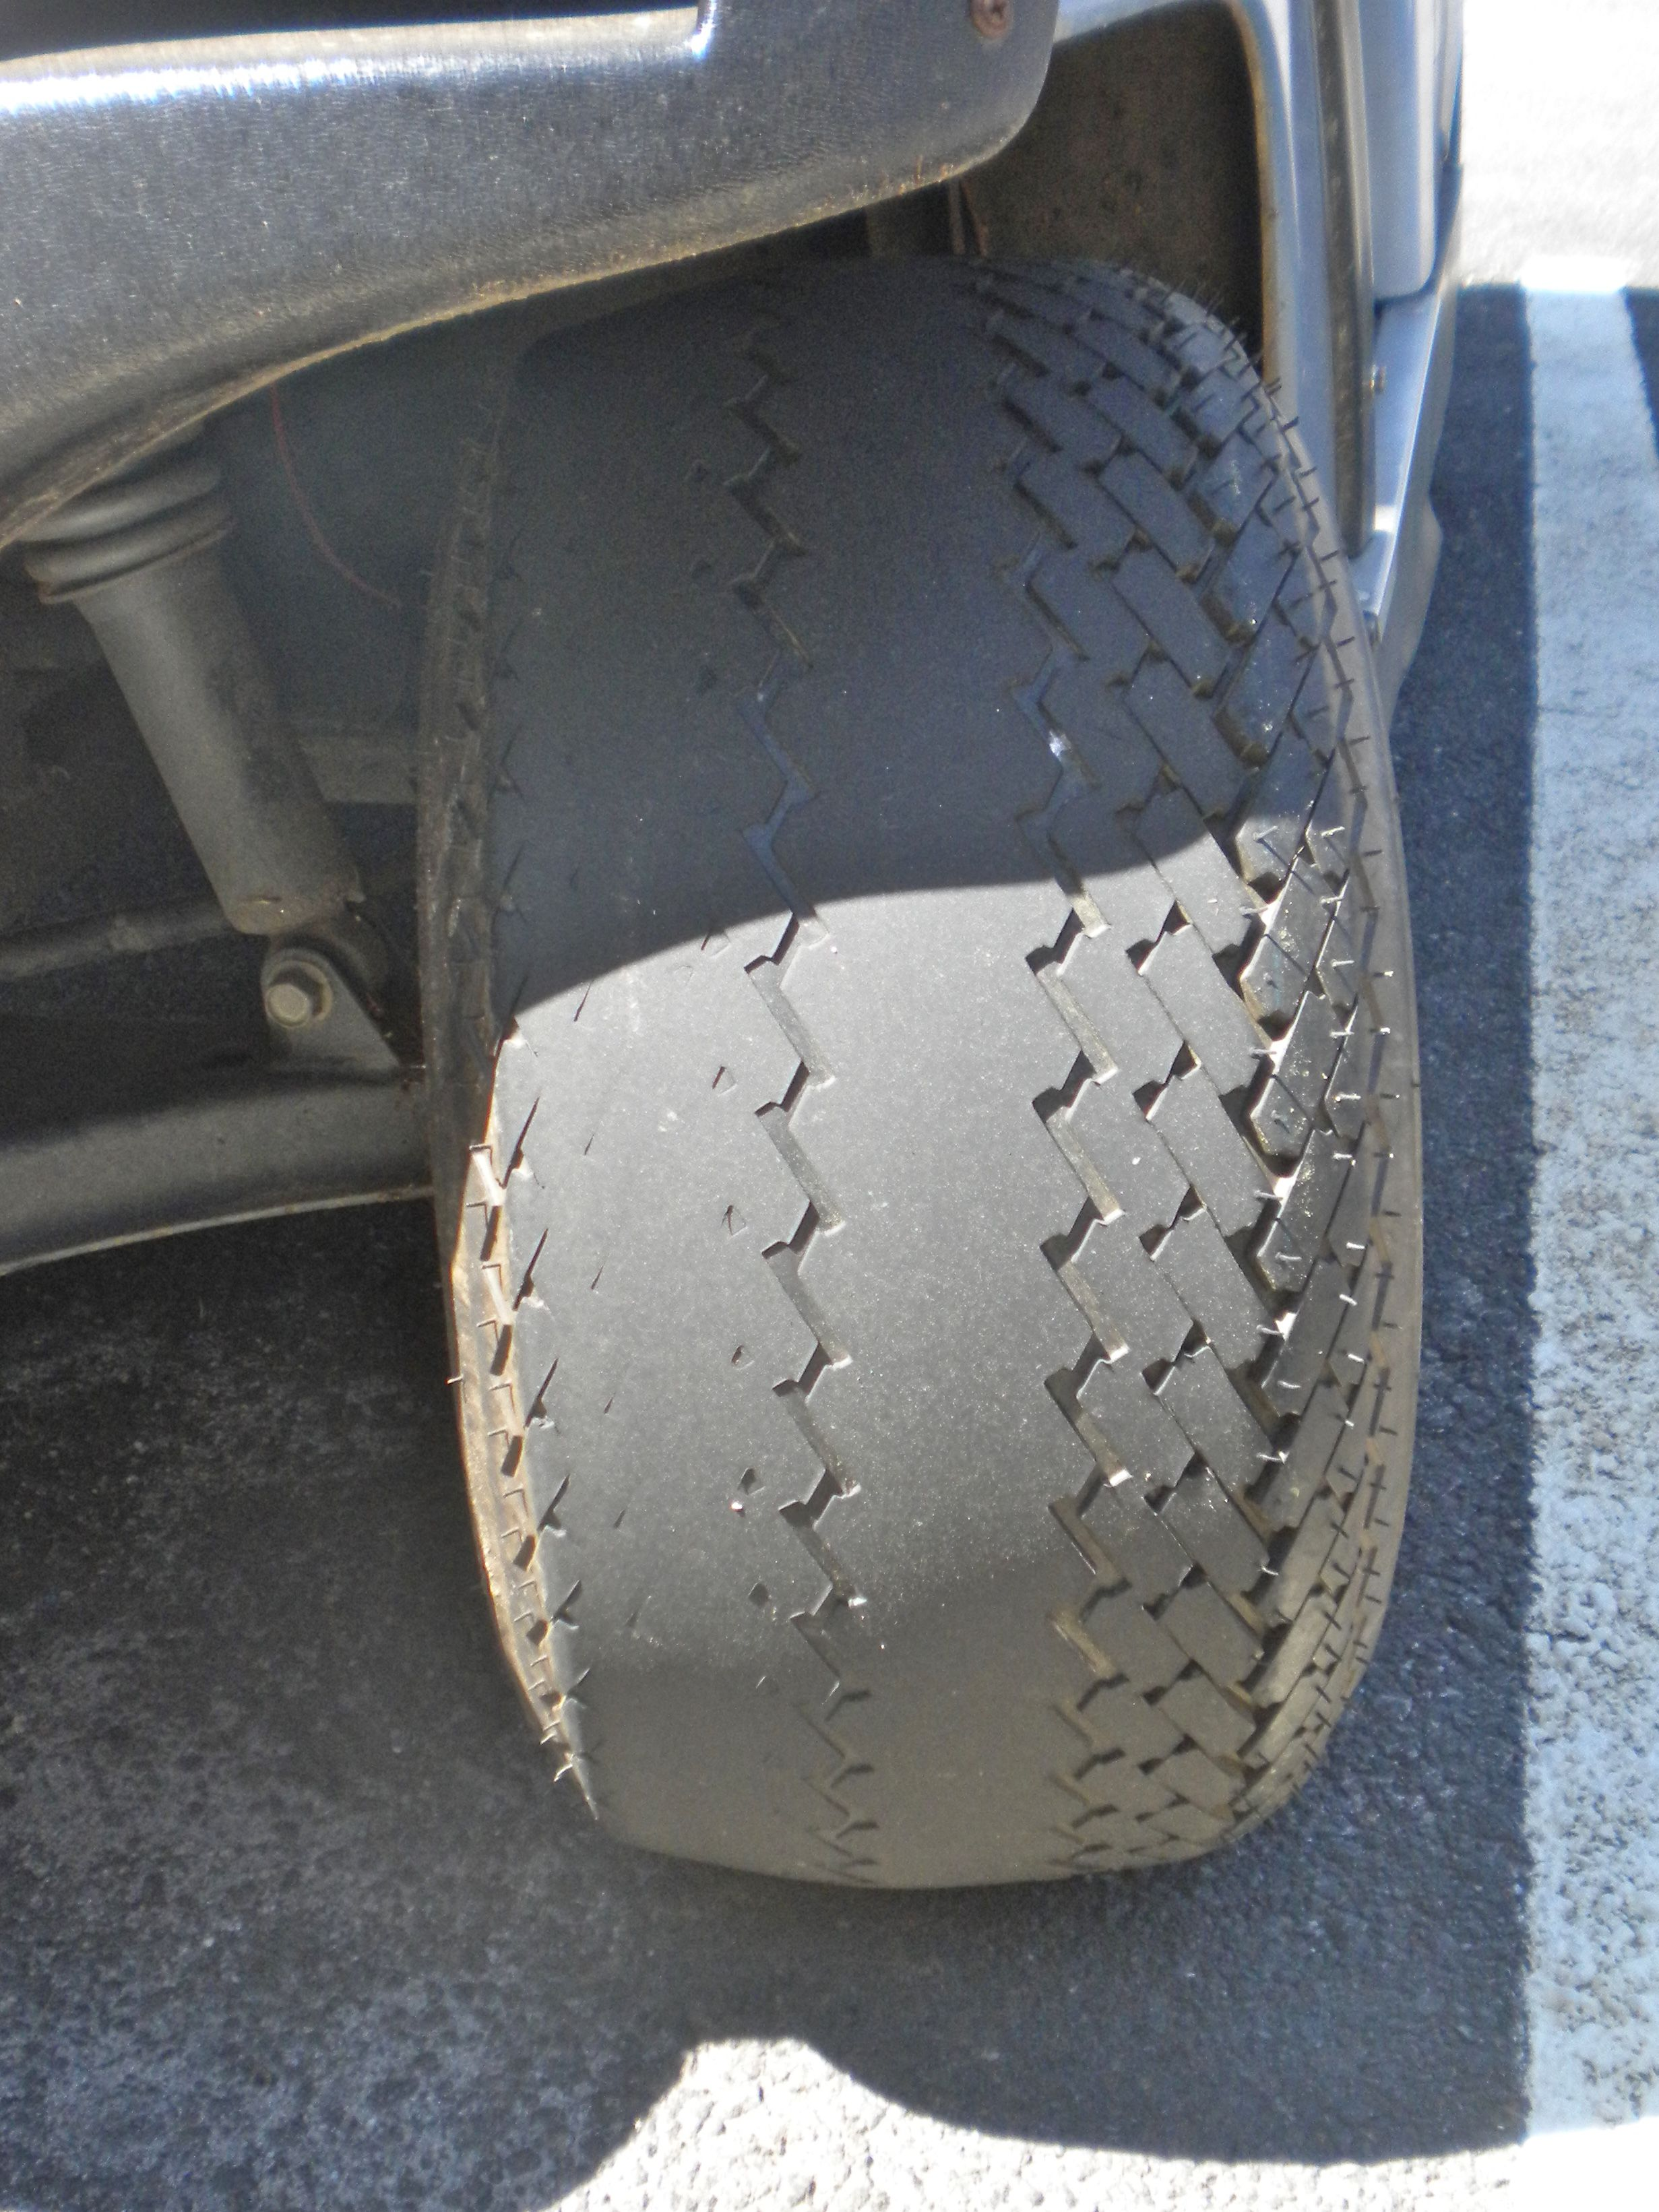 I Recently Noticed That The Tire Wear On The Front Tires Of My Golf Cart Was Different From The Rear Tires Tire Wear Can Be A Normal Condition Or It M